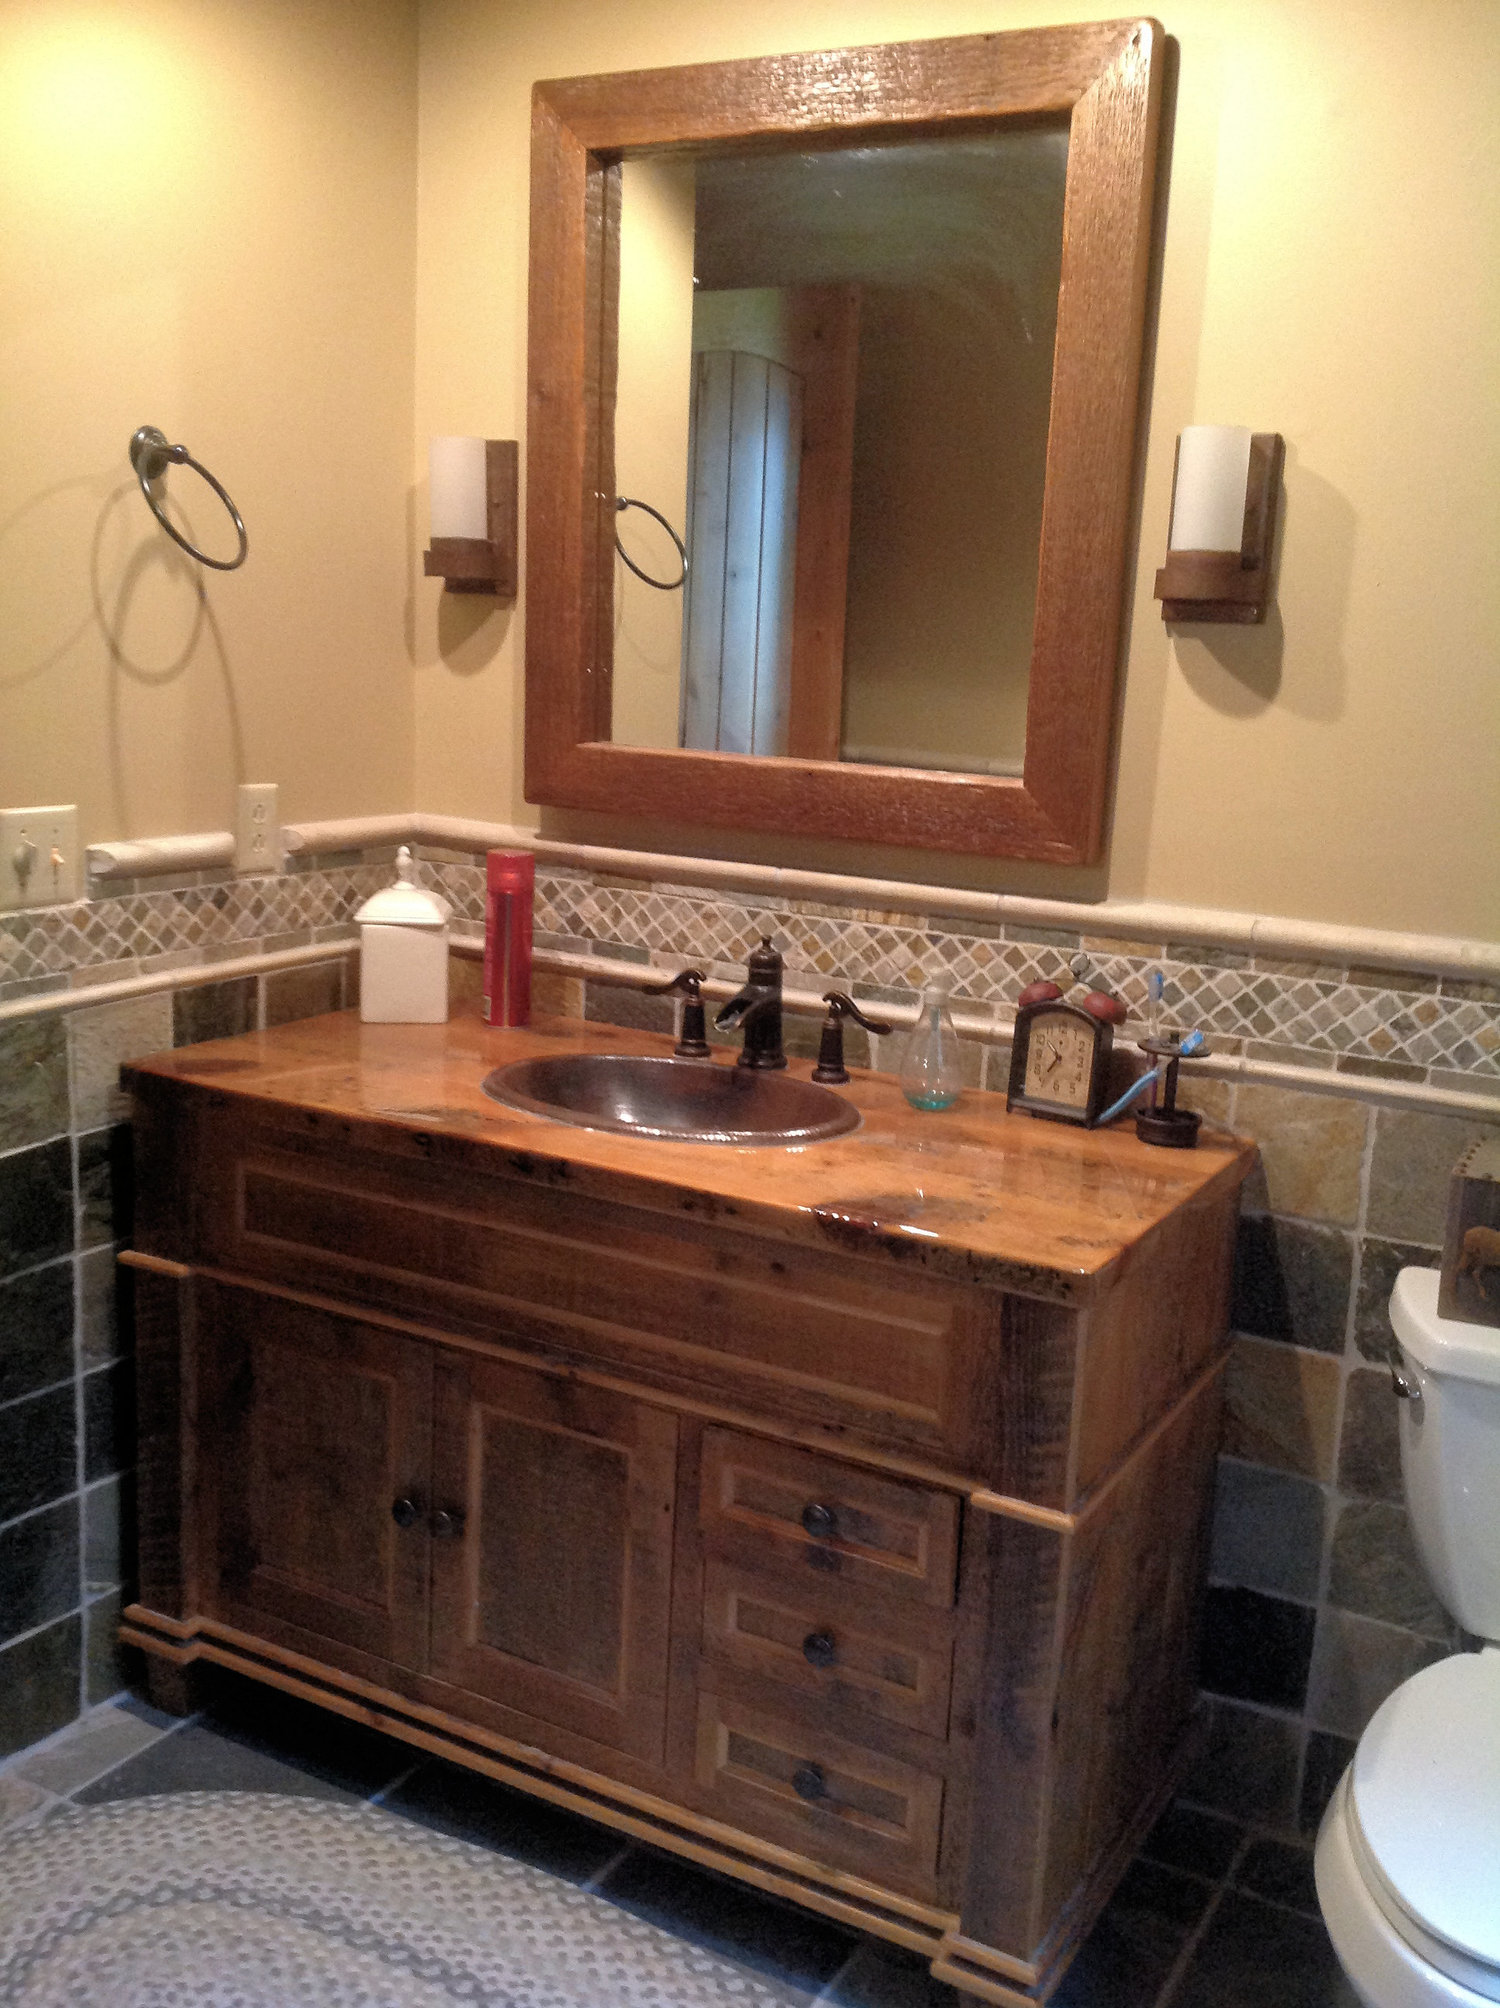 Barn Wood Bathroom — Barn Wood Furniture Rustic Barnwood and Log